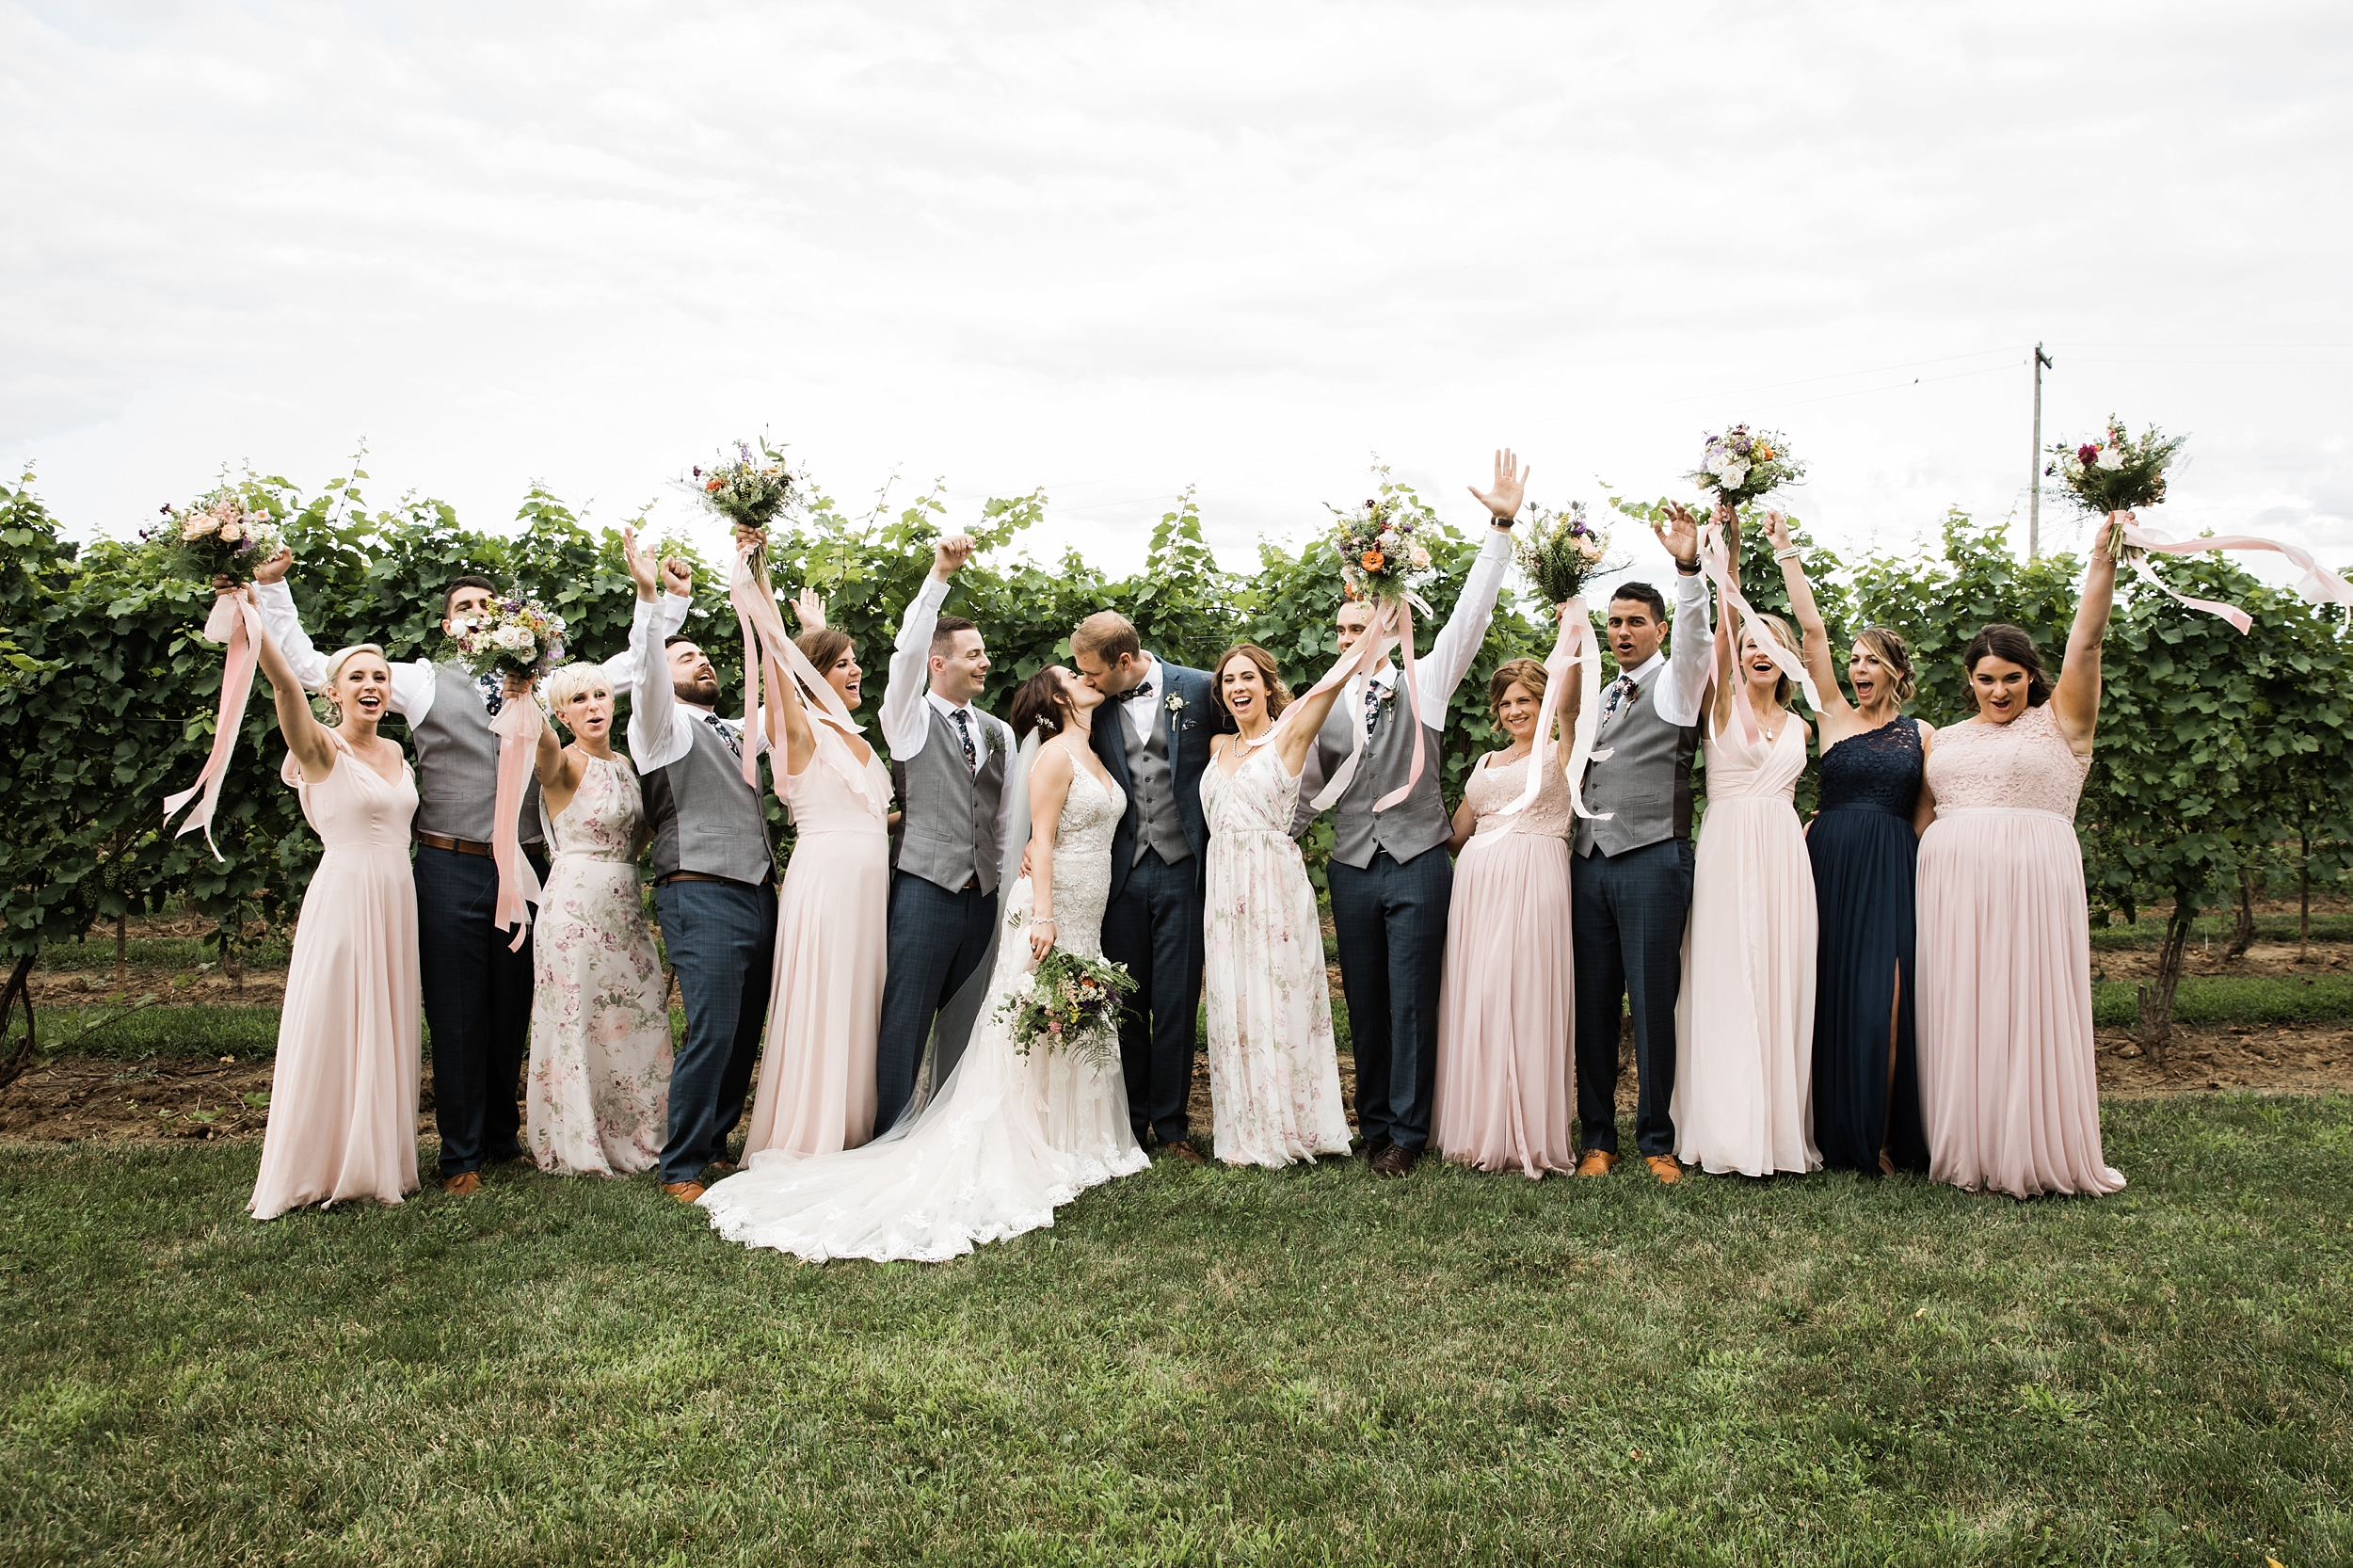 stonewallestates-weddingphotography_0032.jpg